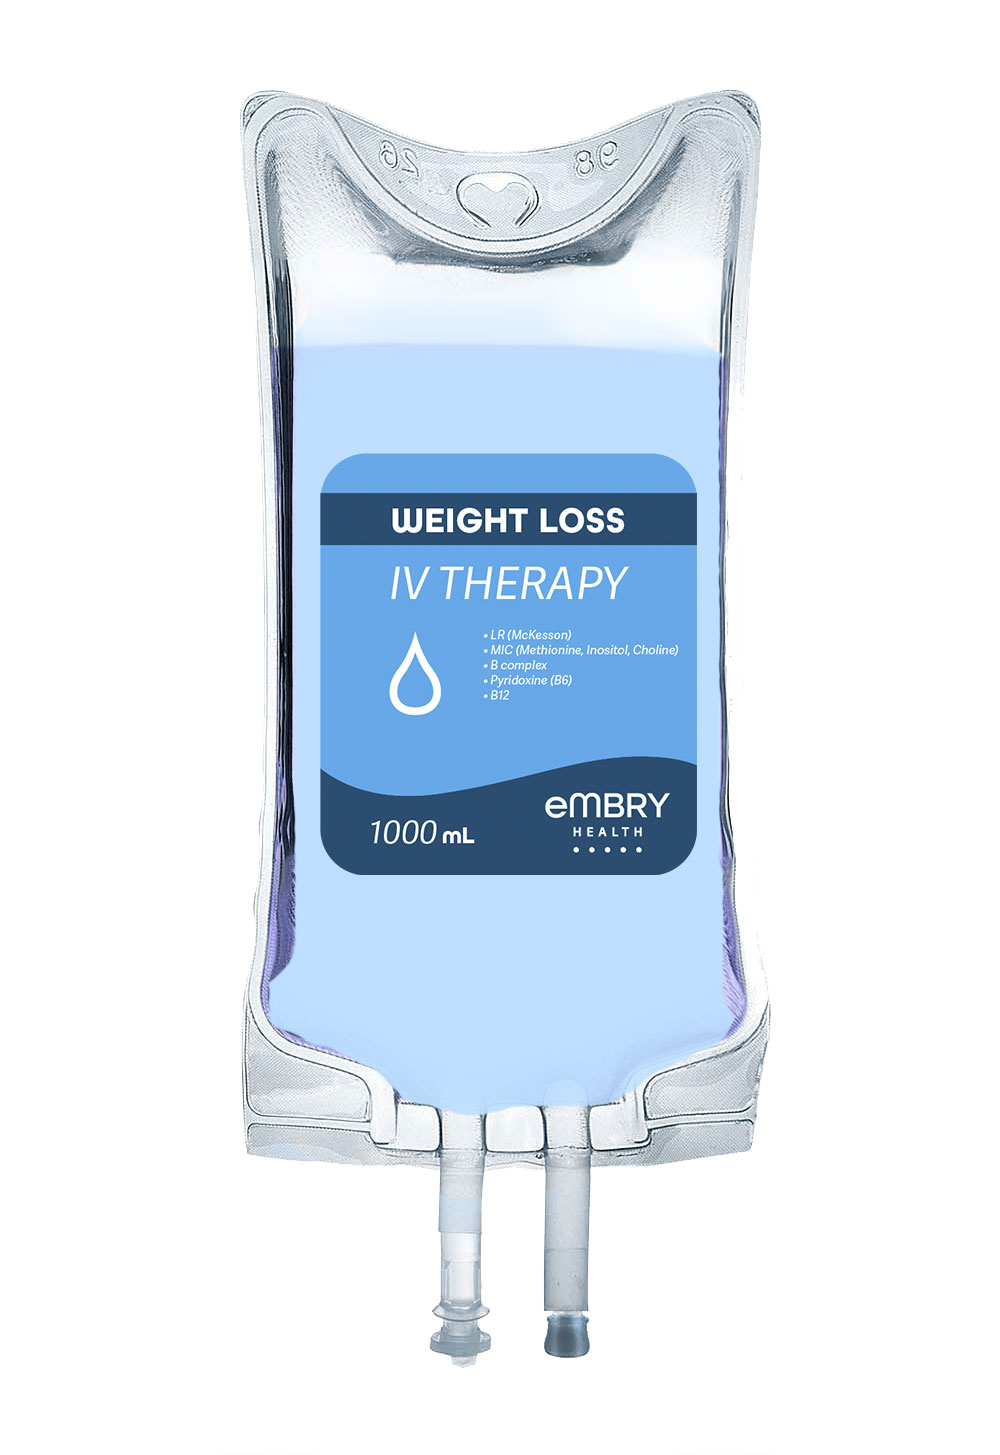 Includes a blend of IV fluids and electrolytes formulated for quick hydration and weight loss leaving you feeling revitalized and refreshed.